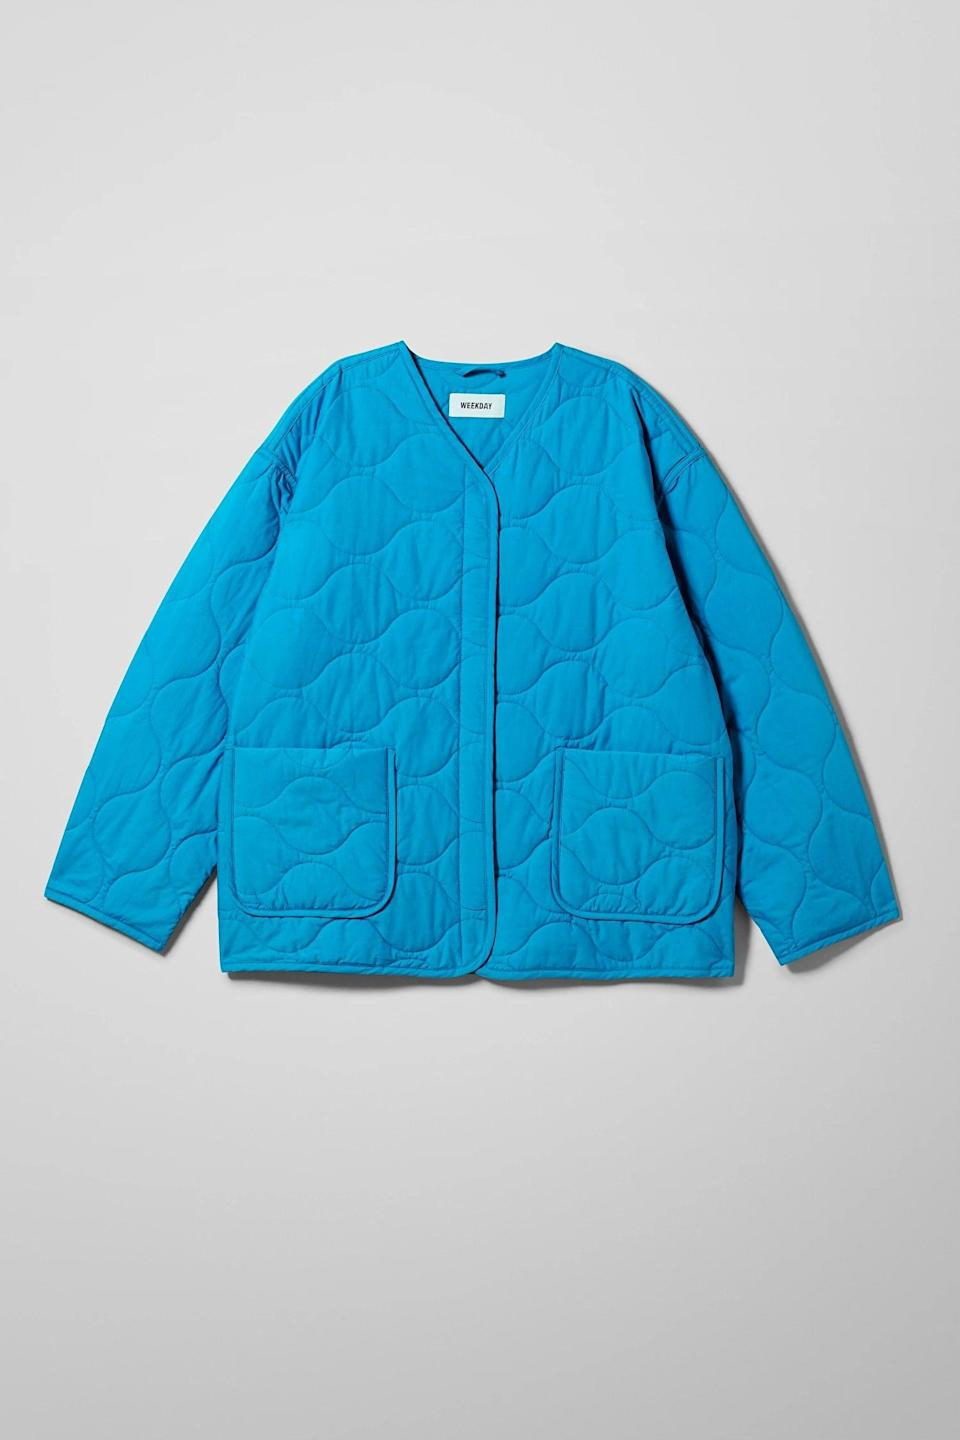 """<br><br><strong>Weekday</strong> Nova Quilted Jacket, $, available at <a href=""""https://www.weekday.com/en_gbp/women/jackets-coats/product.nova-quilted-jacket-blue.0857736002.html"""" rel=""""nofollow noopener"""" target=""""_blank"""" data-ylk=""""slk:Weekday"""" class=""""link rapid-noclick-resp"""">Weekday</a>"""